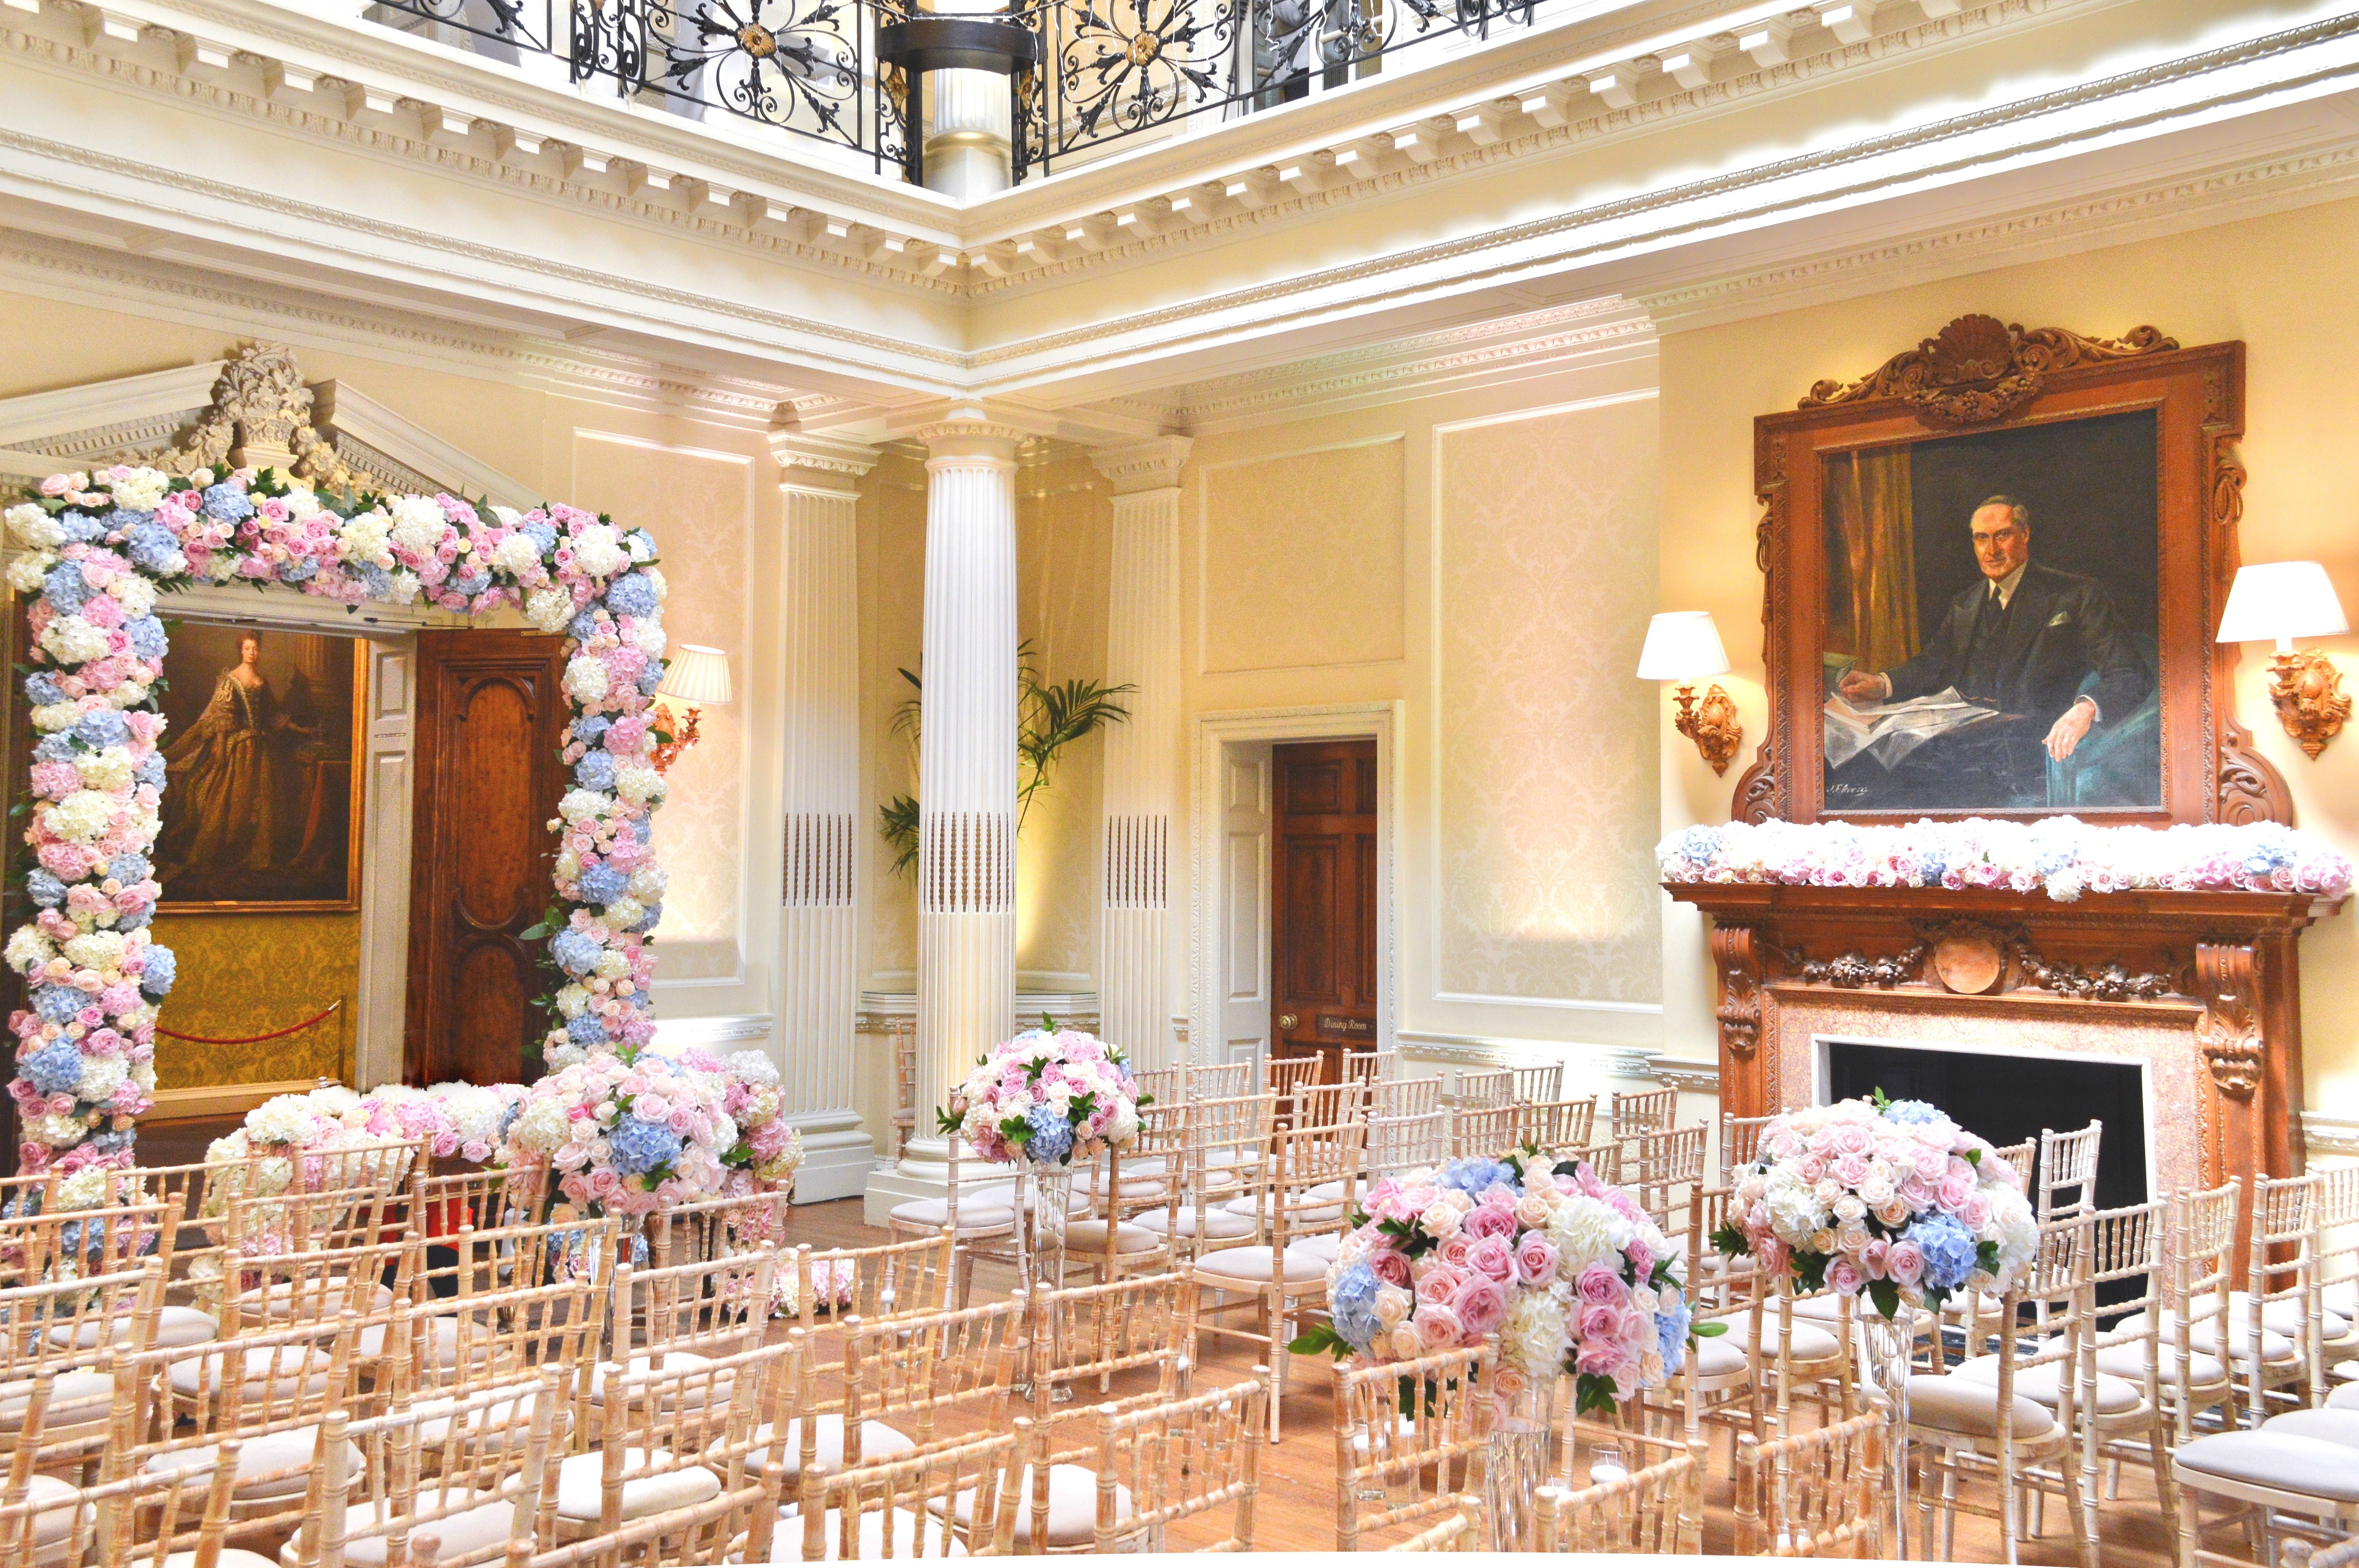 Dusty blue and pink wedding flowers arch registrar table head toptable floral garland wedding ceremony aisle floating candles Cherie Kelly cakes London Hedsor House 5